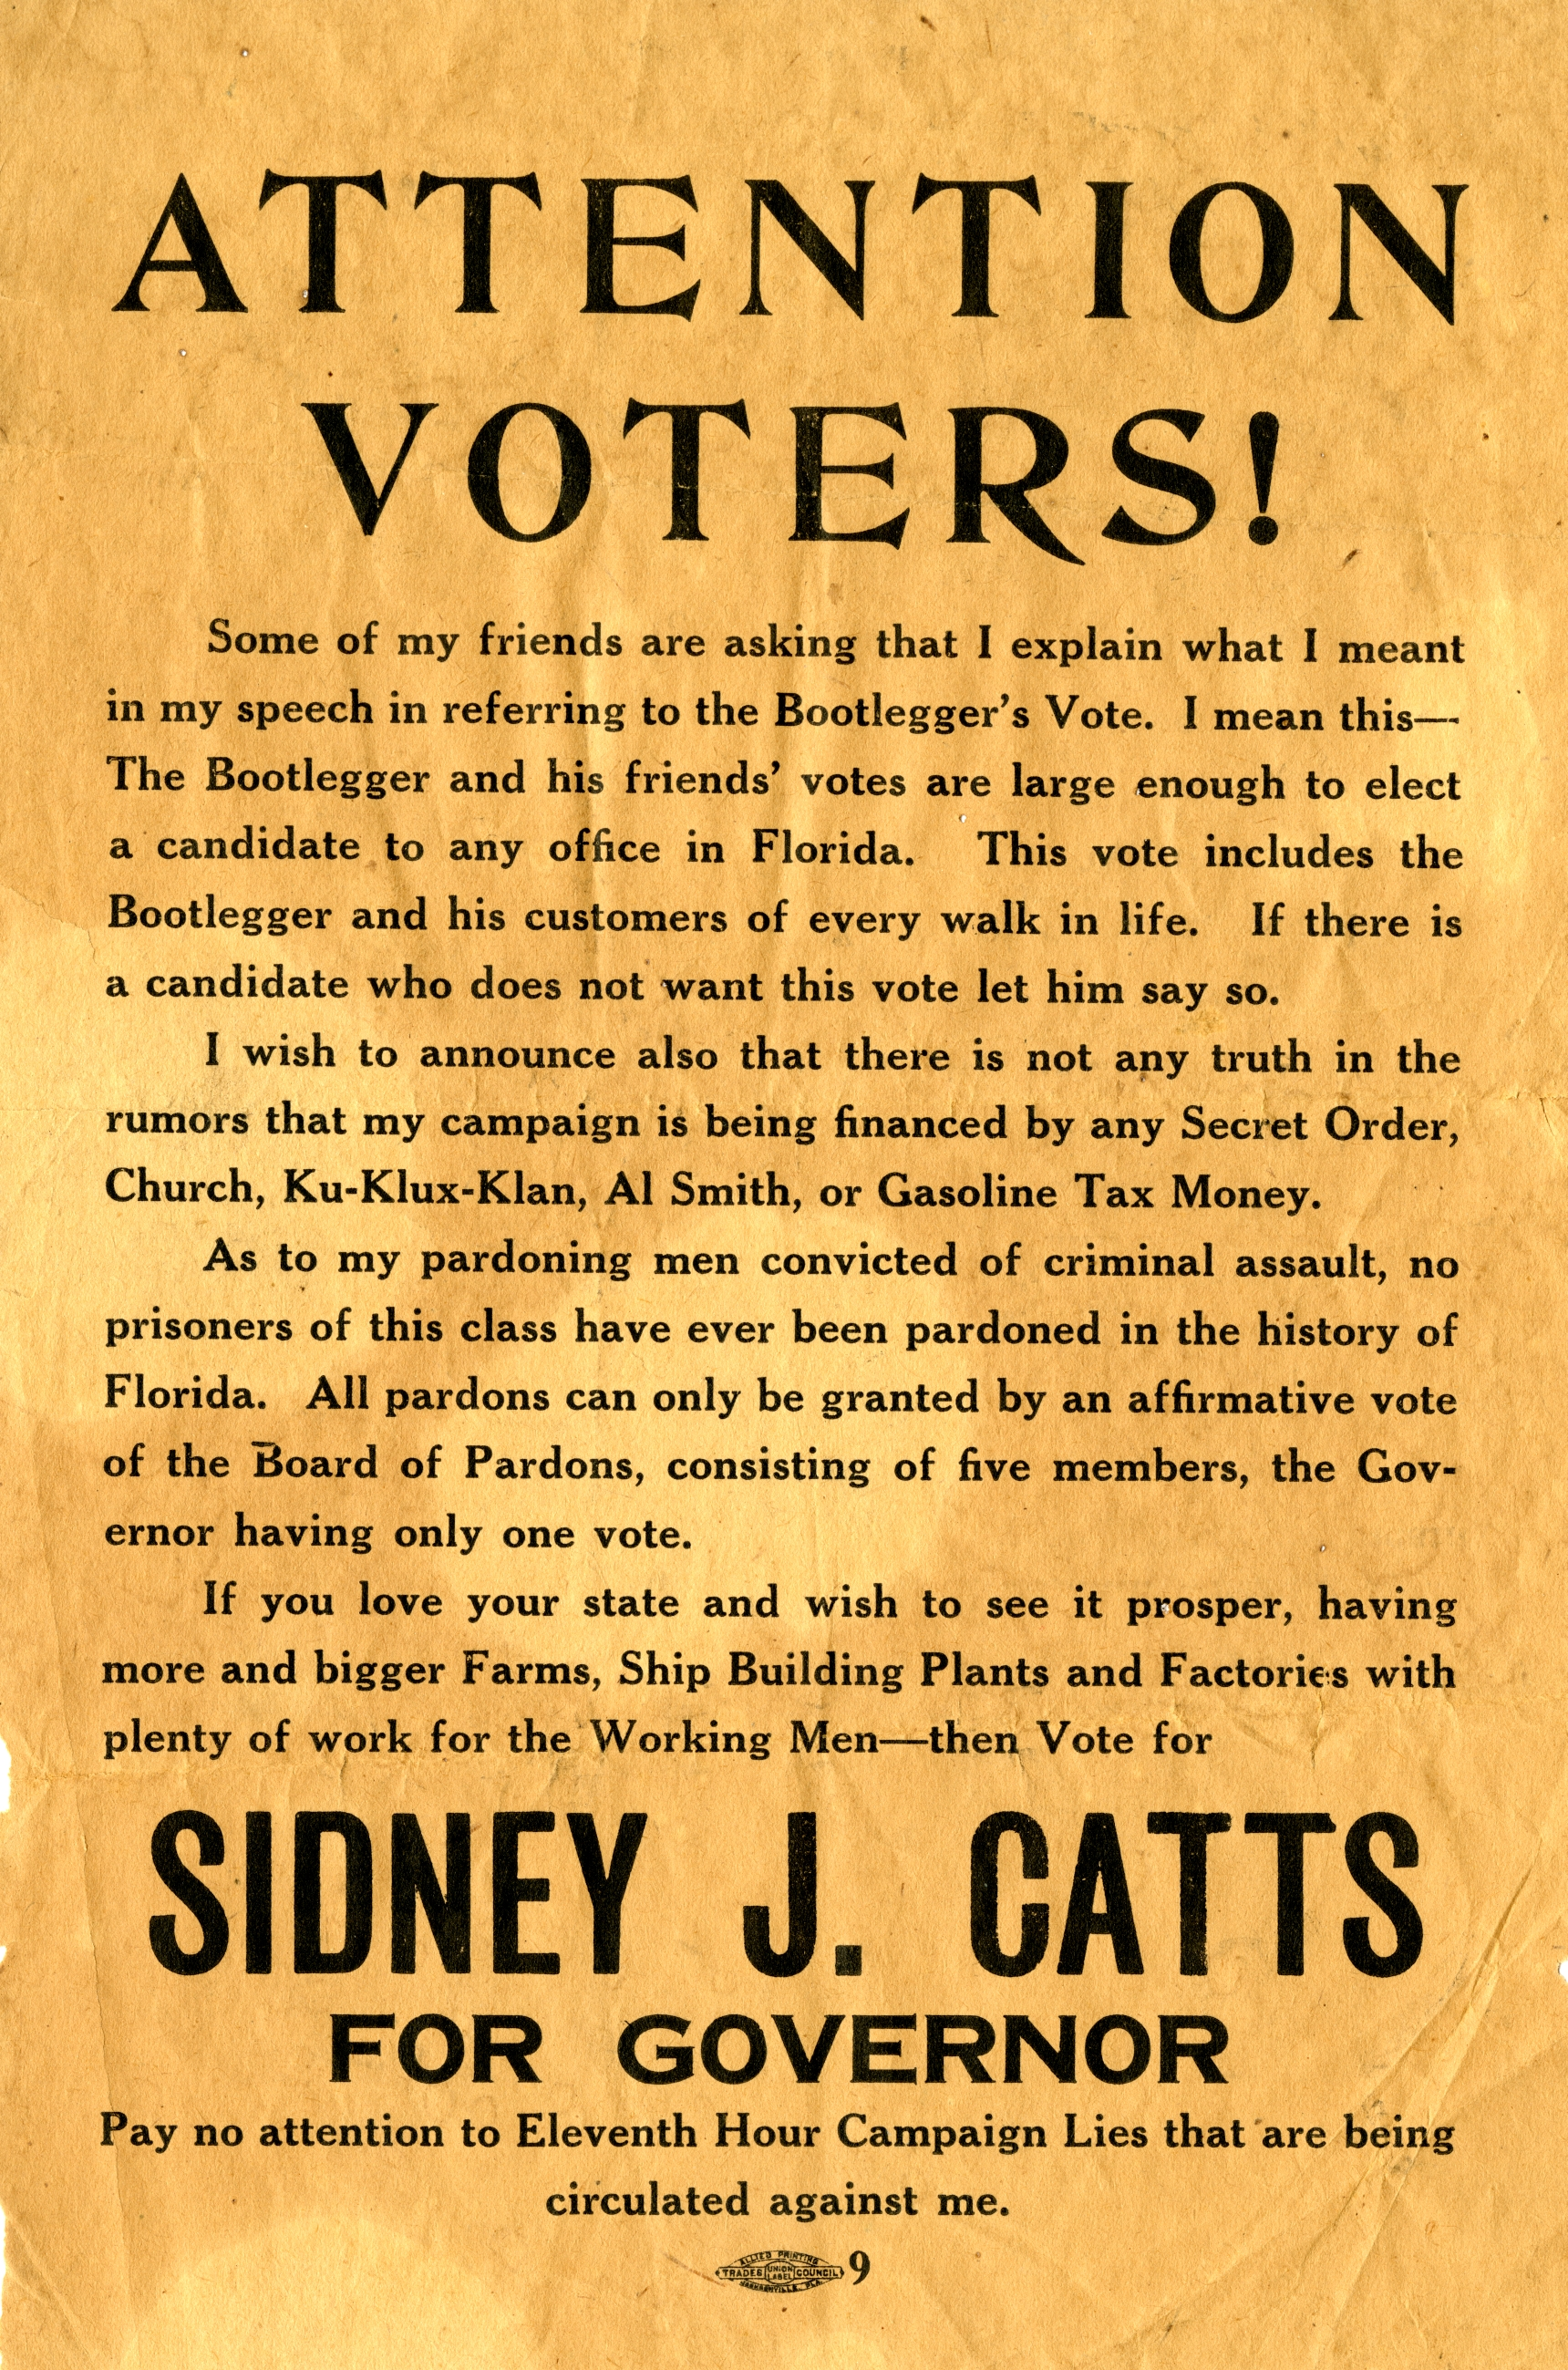 Attention voters! Sidney J. Catts for governor.